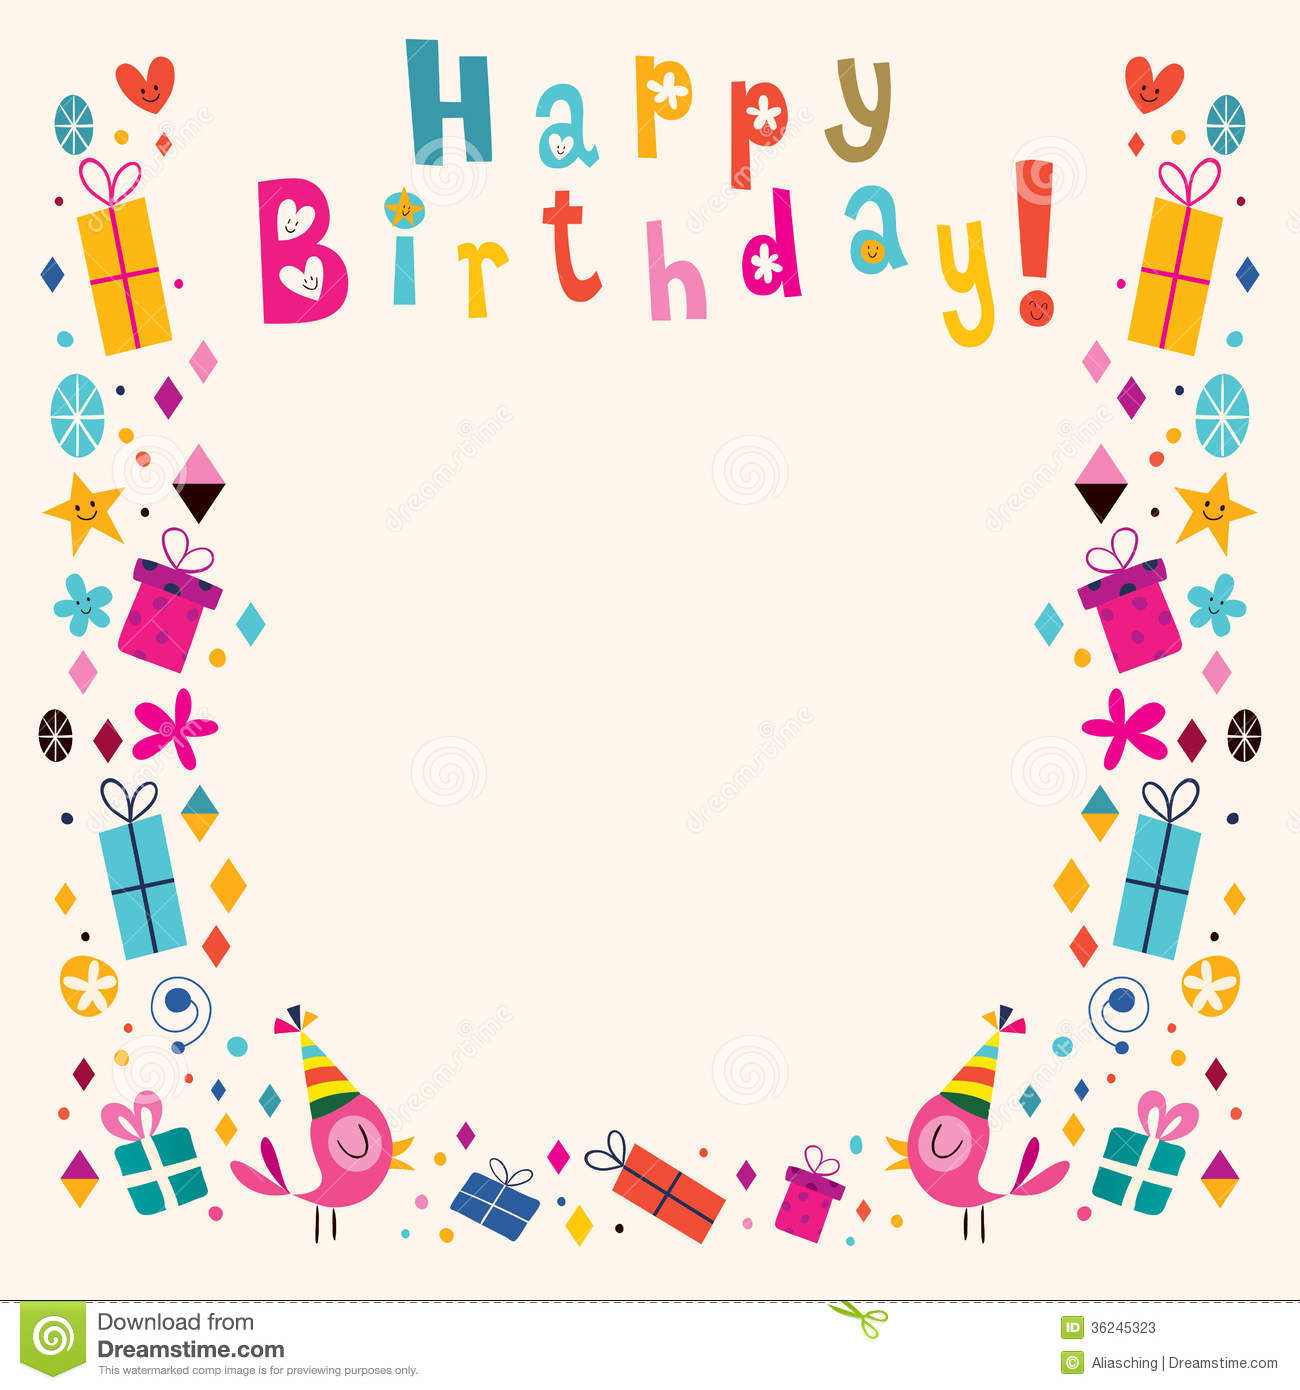 Happy Birthday Border Retro C - Birthday Border Clip Art